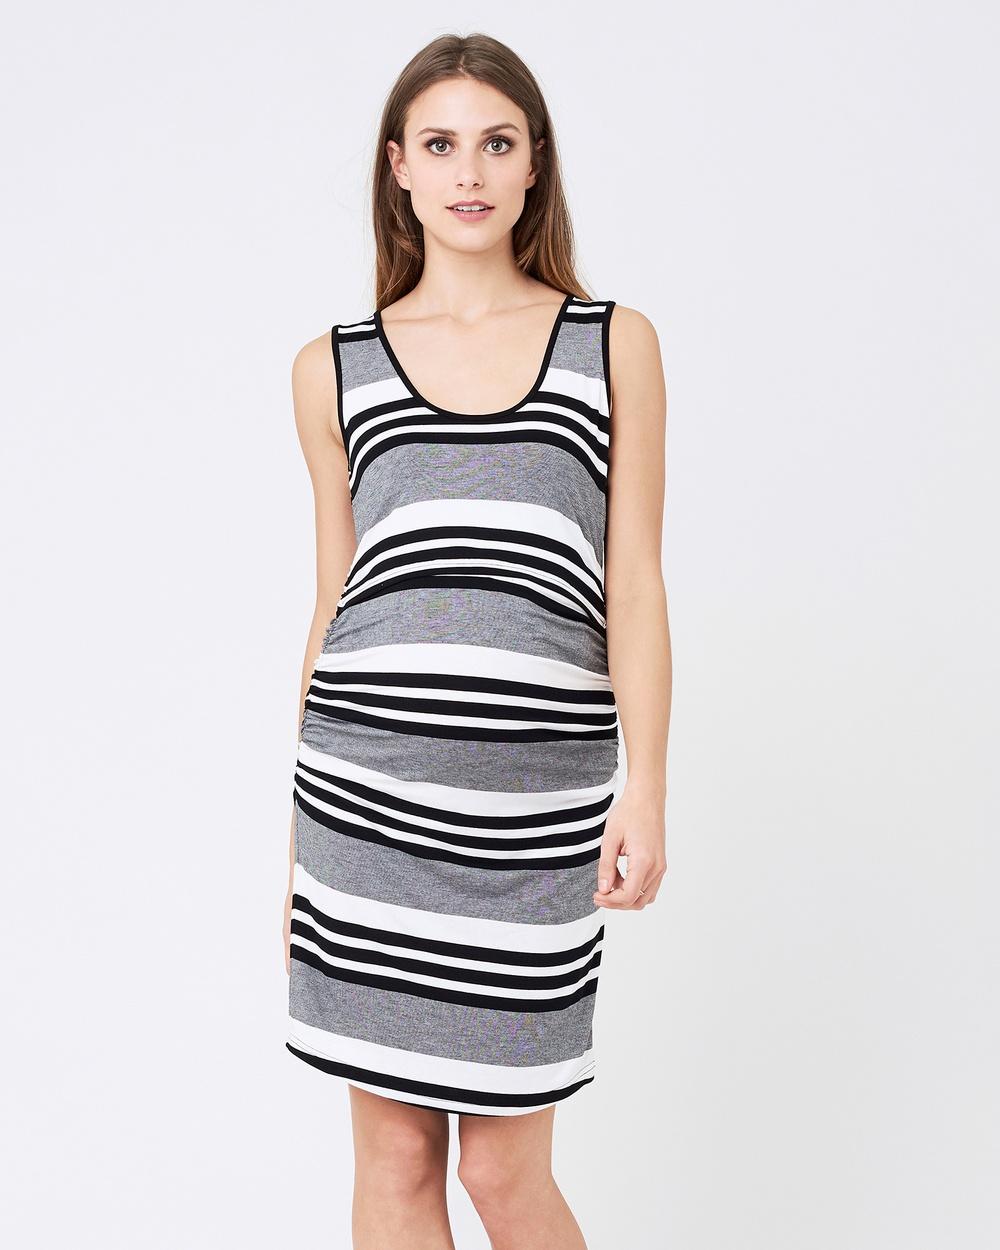 Ripe Maternity Stripe Nursing Dress Bodycon Dresses Black-White Stripe Nursing Dress